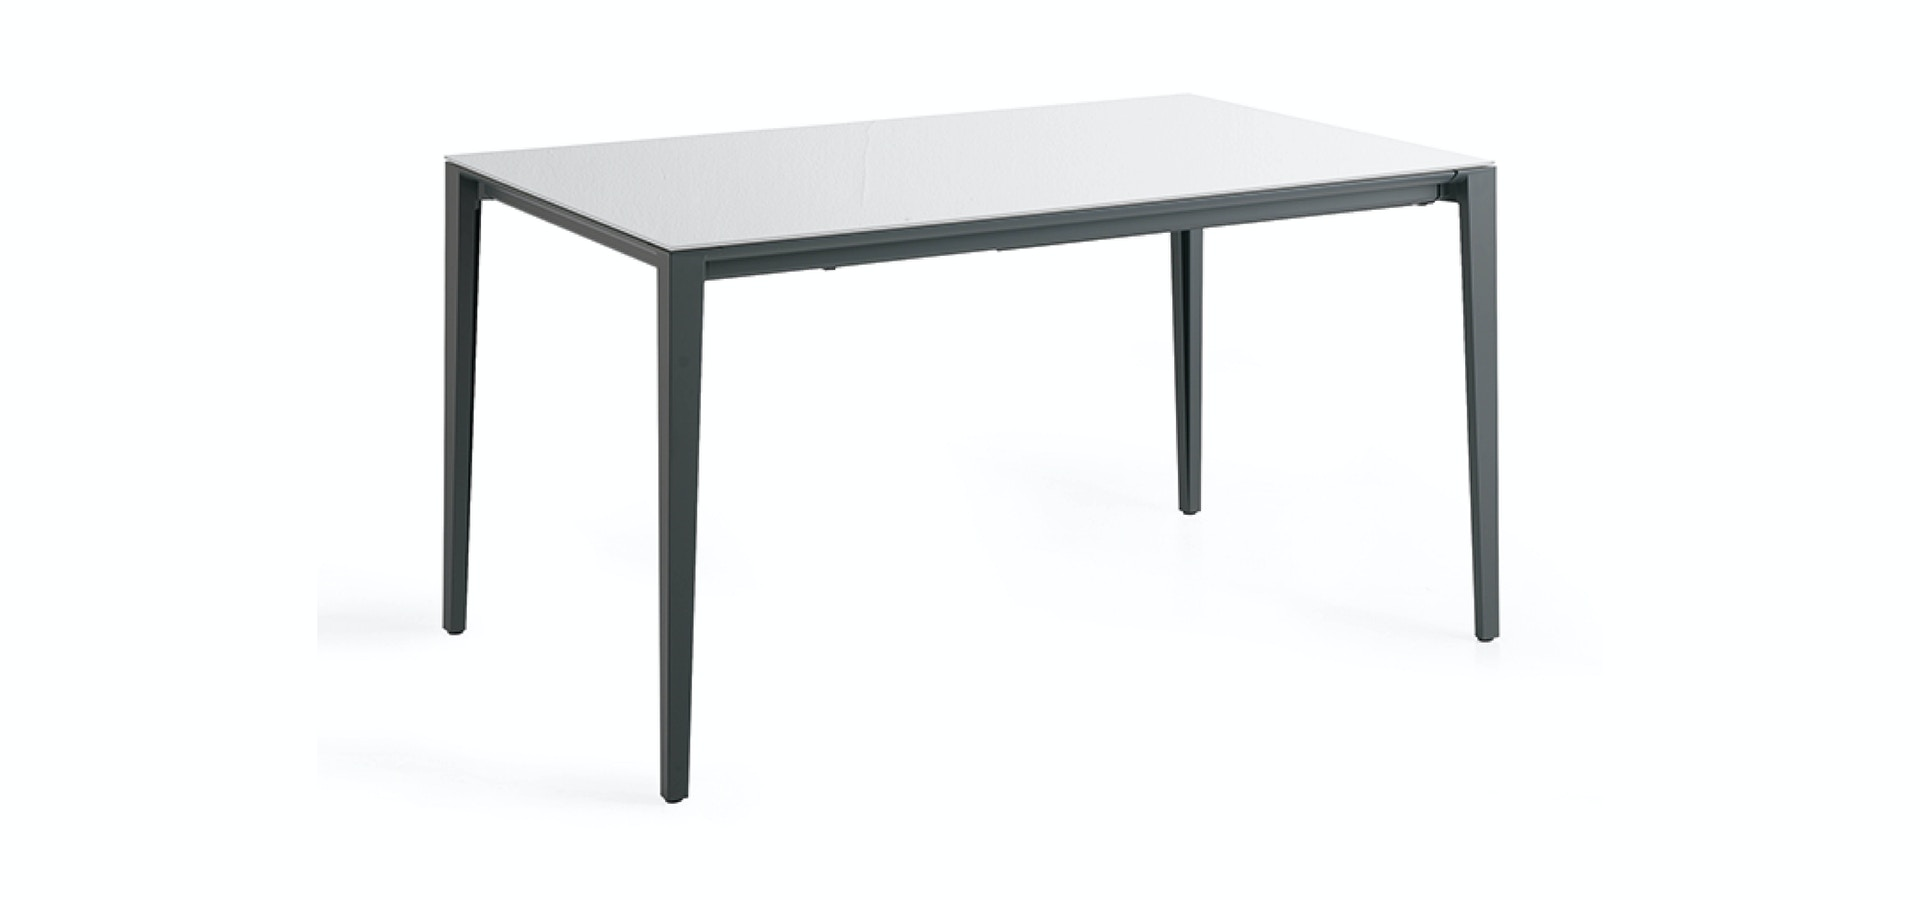 Tables Stosa - Model Fusion 9280